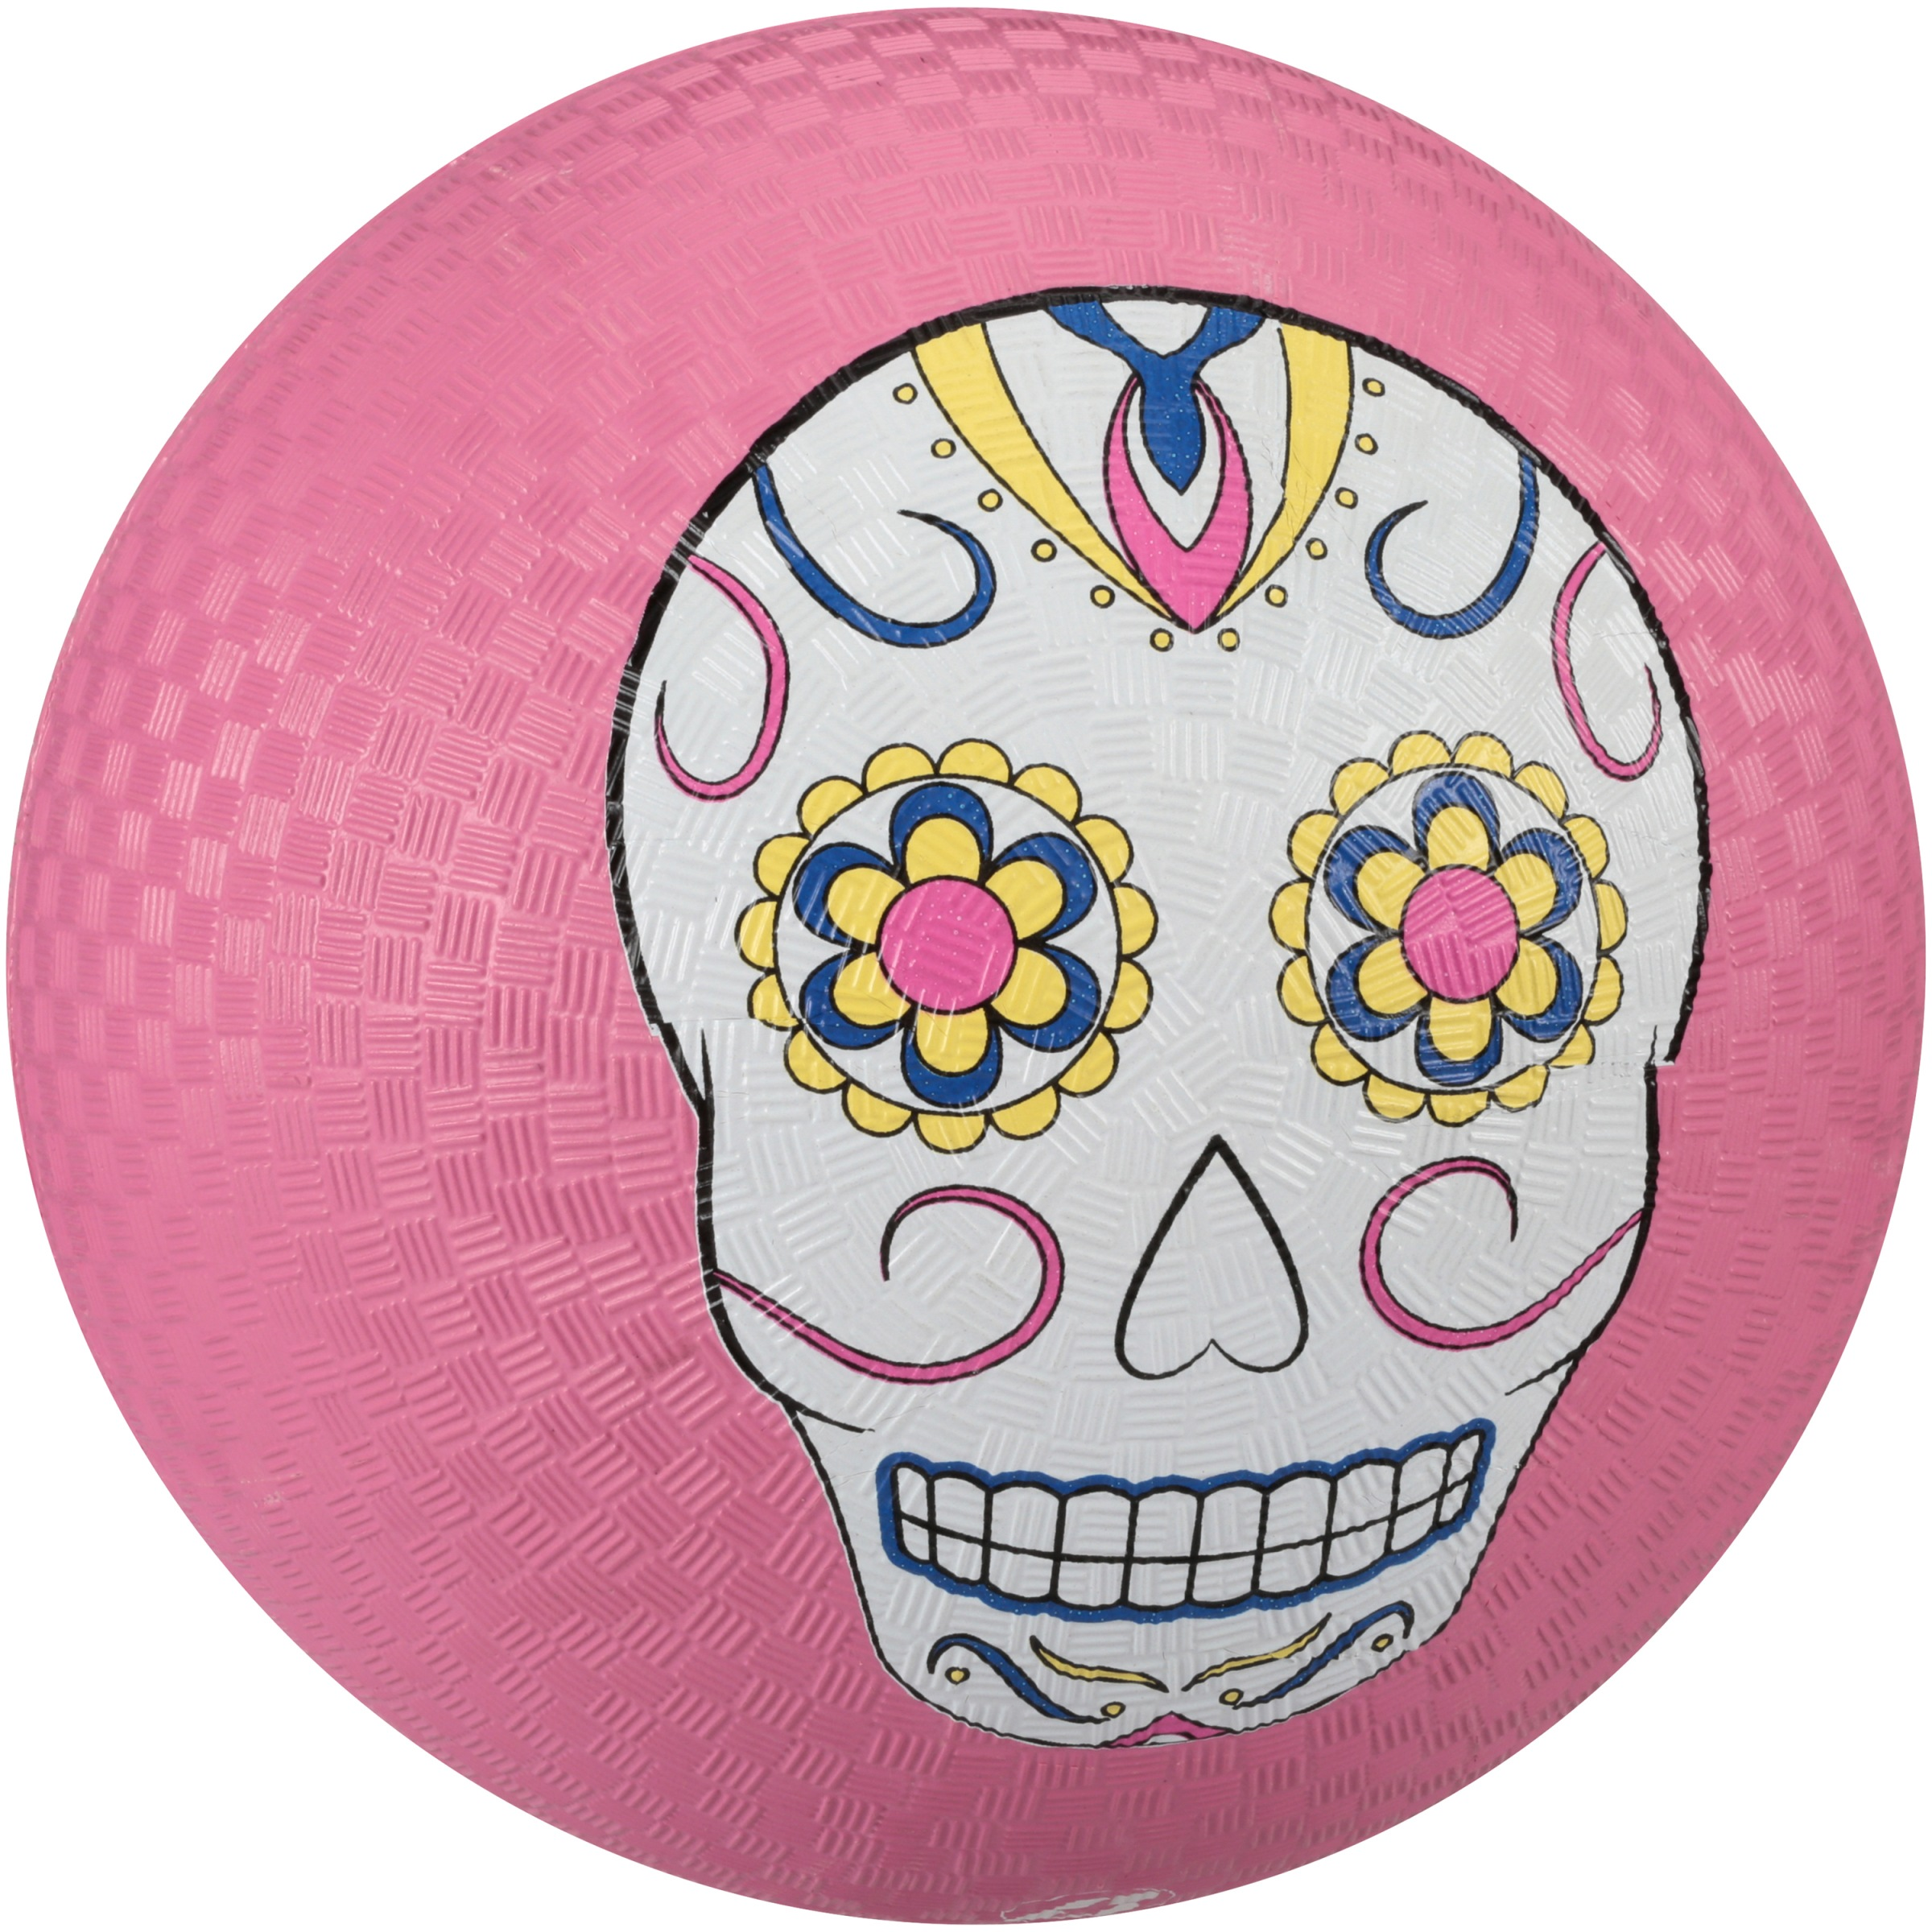 Baden® Pink Sports Calavera Playground Ball